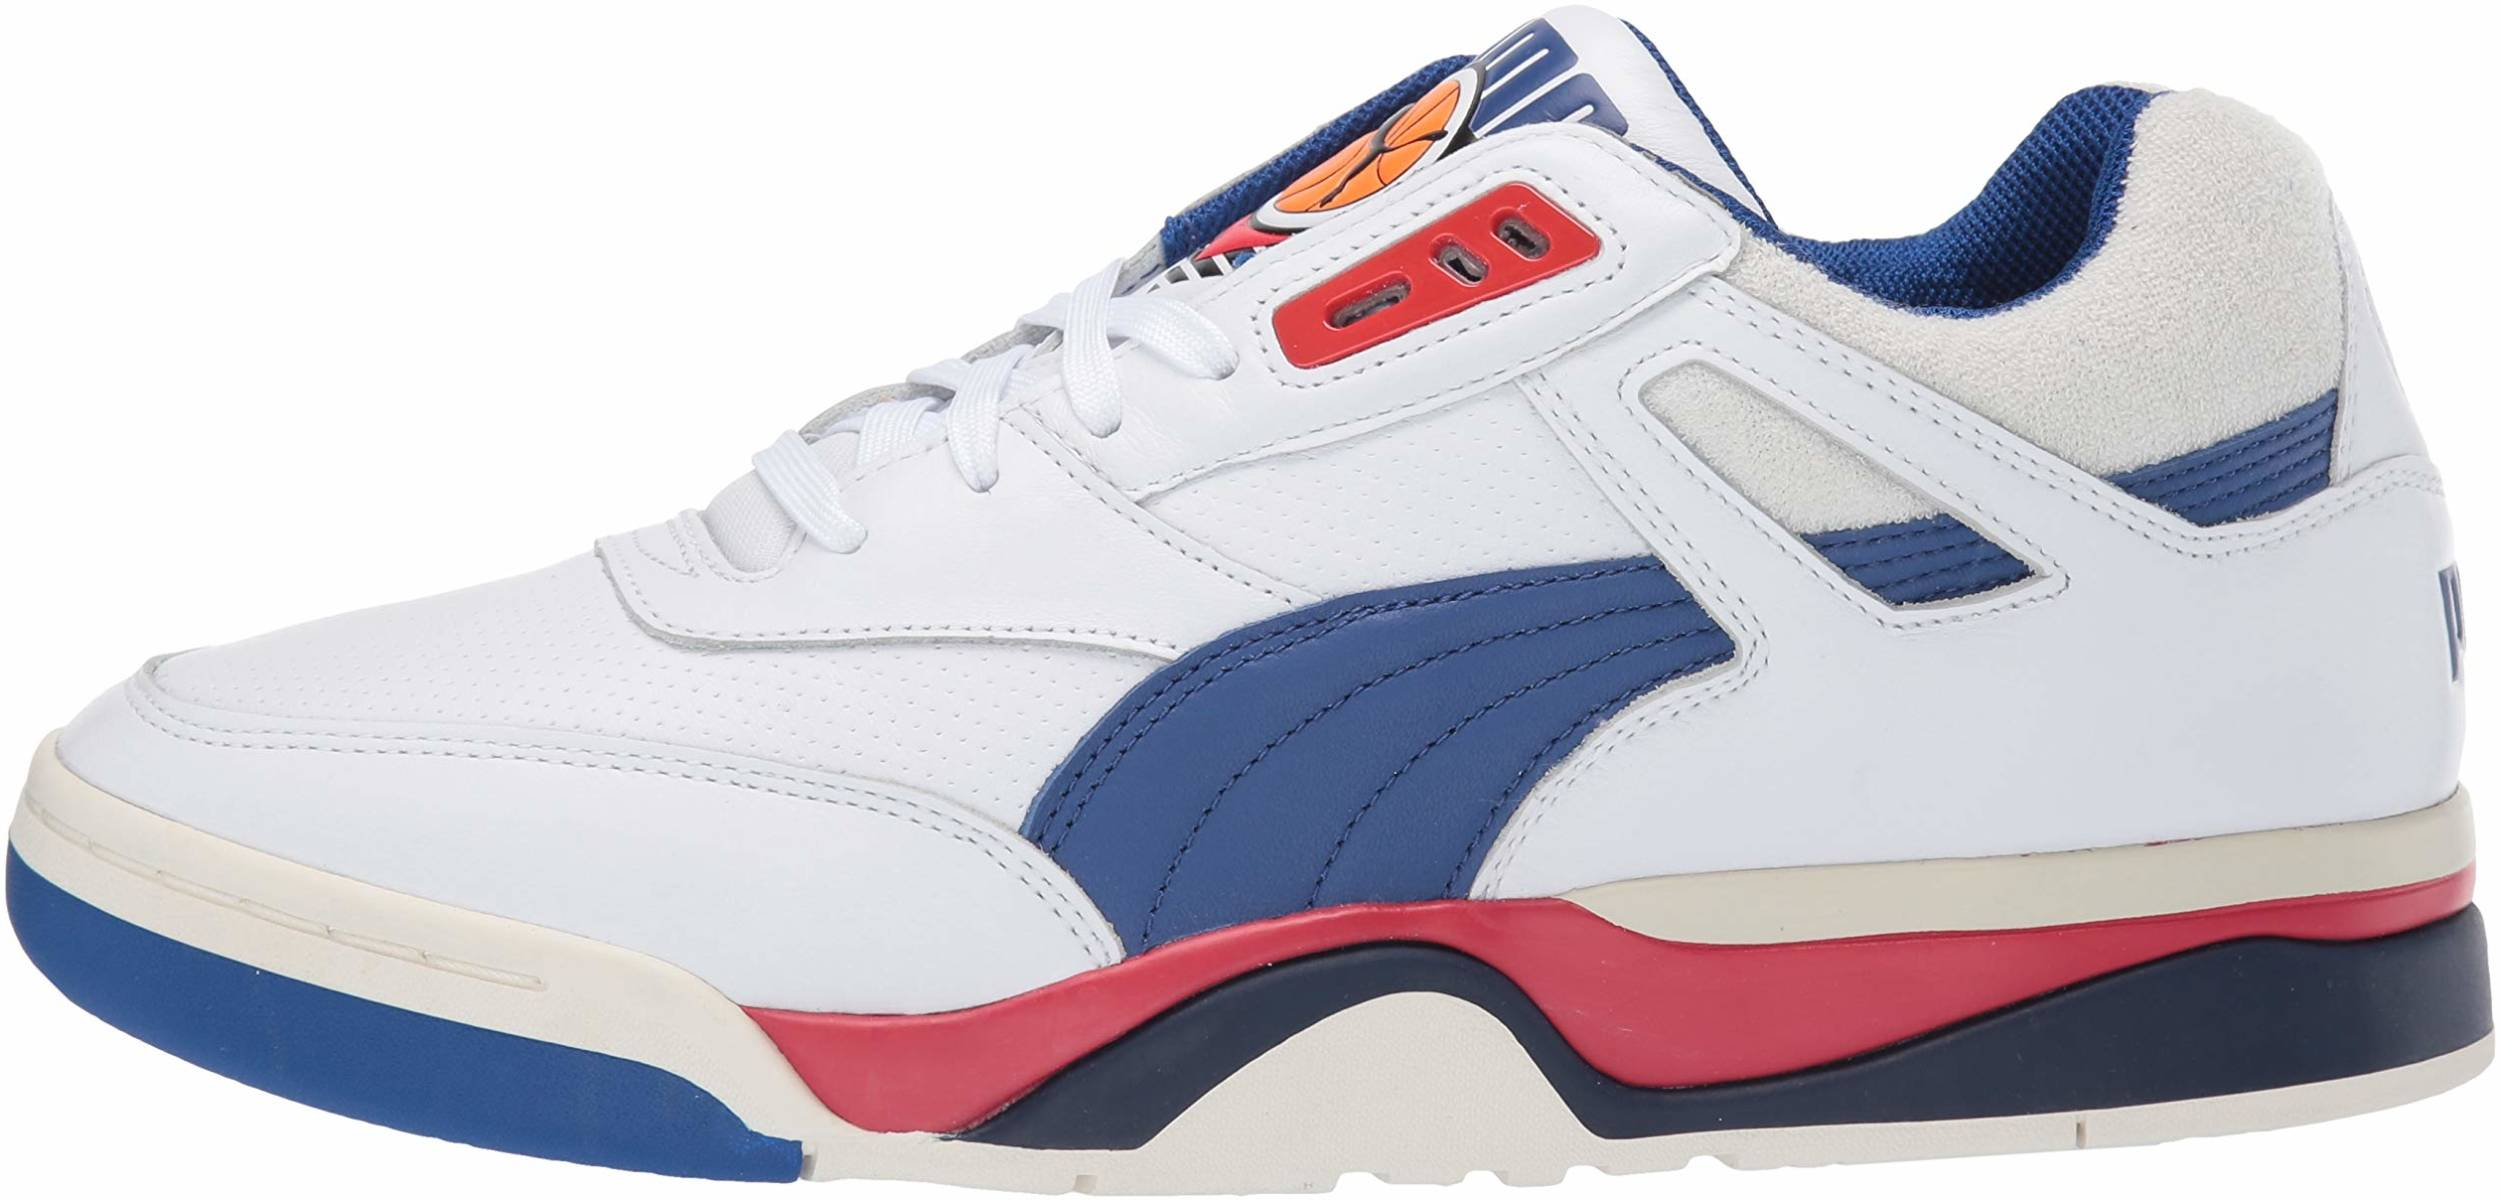 Only $36 + Review of Puma Palace Guard